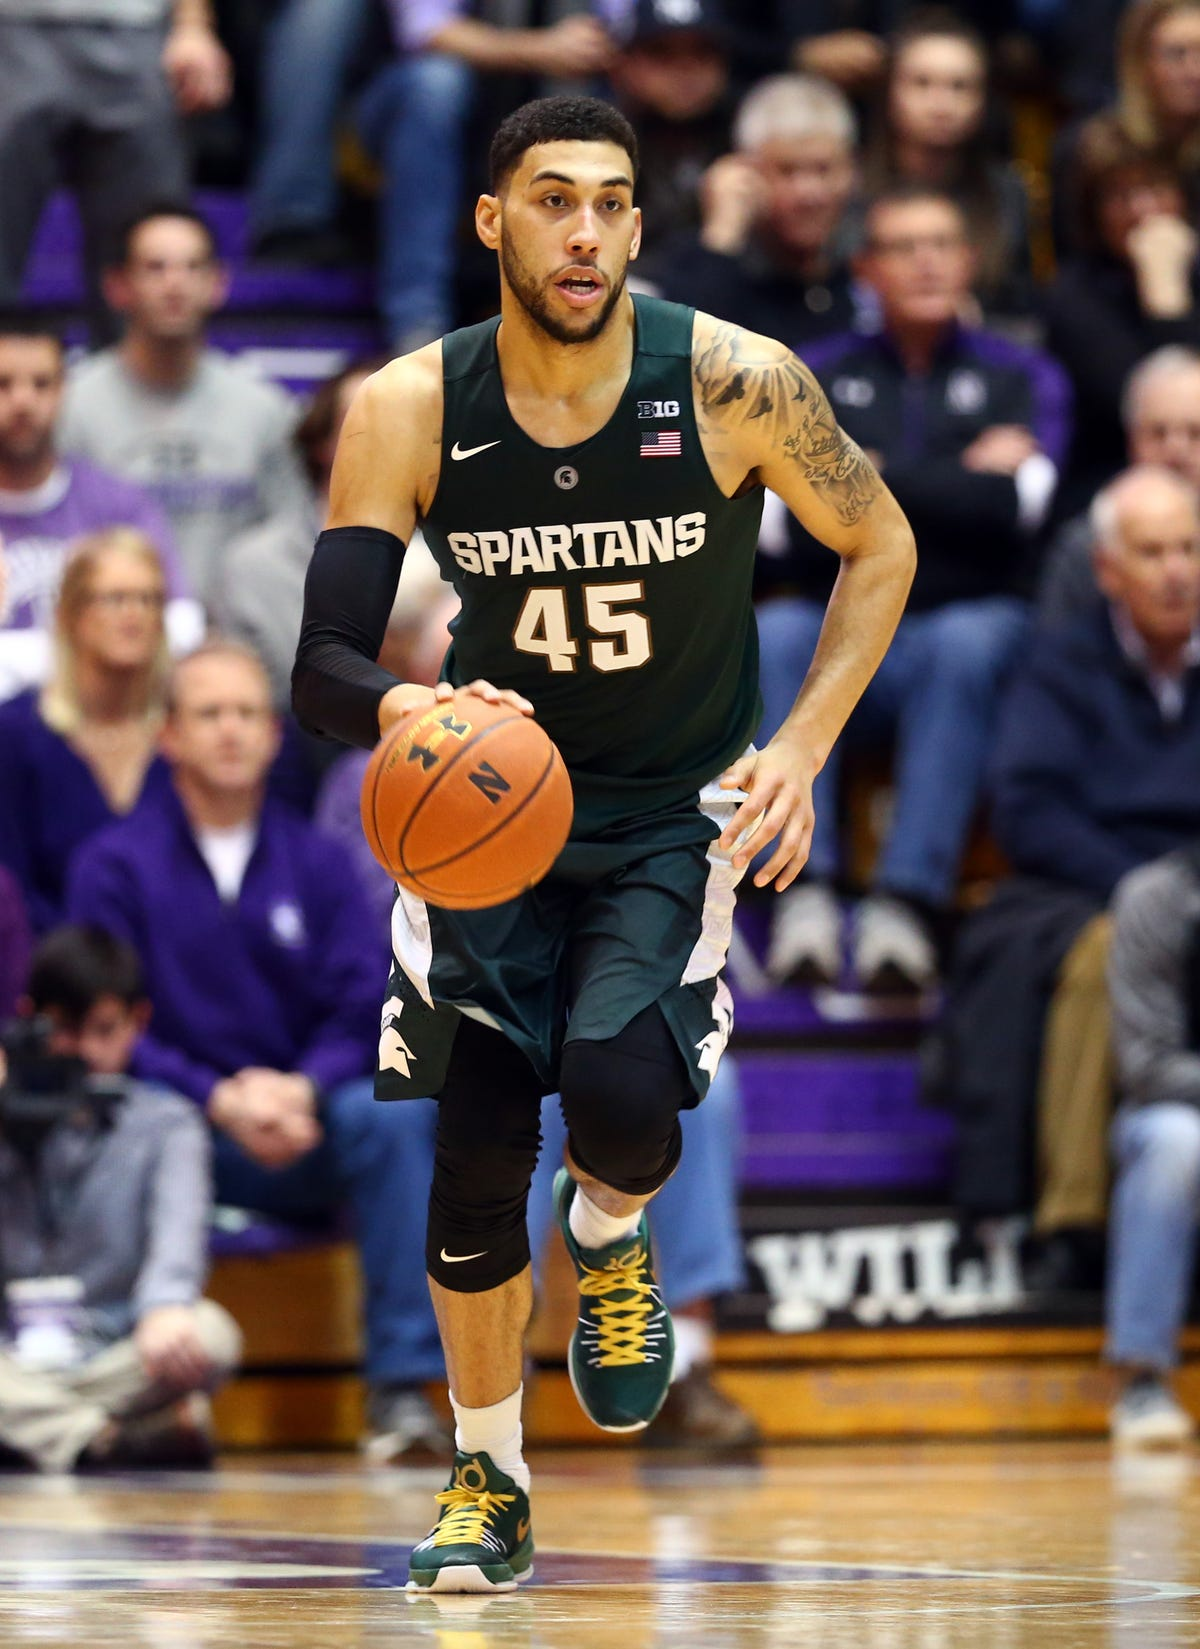 Spartans take golden opportunity to lace up for Lacey